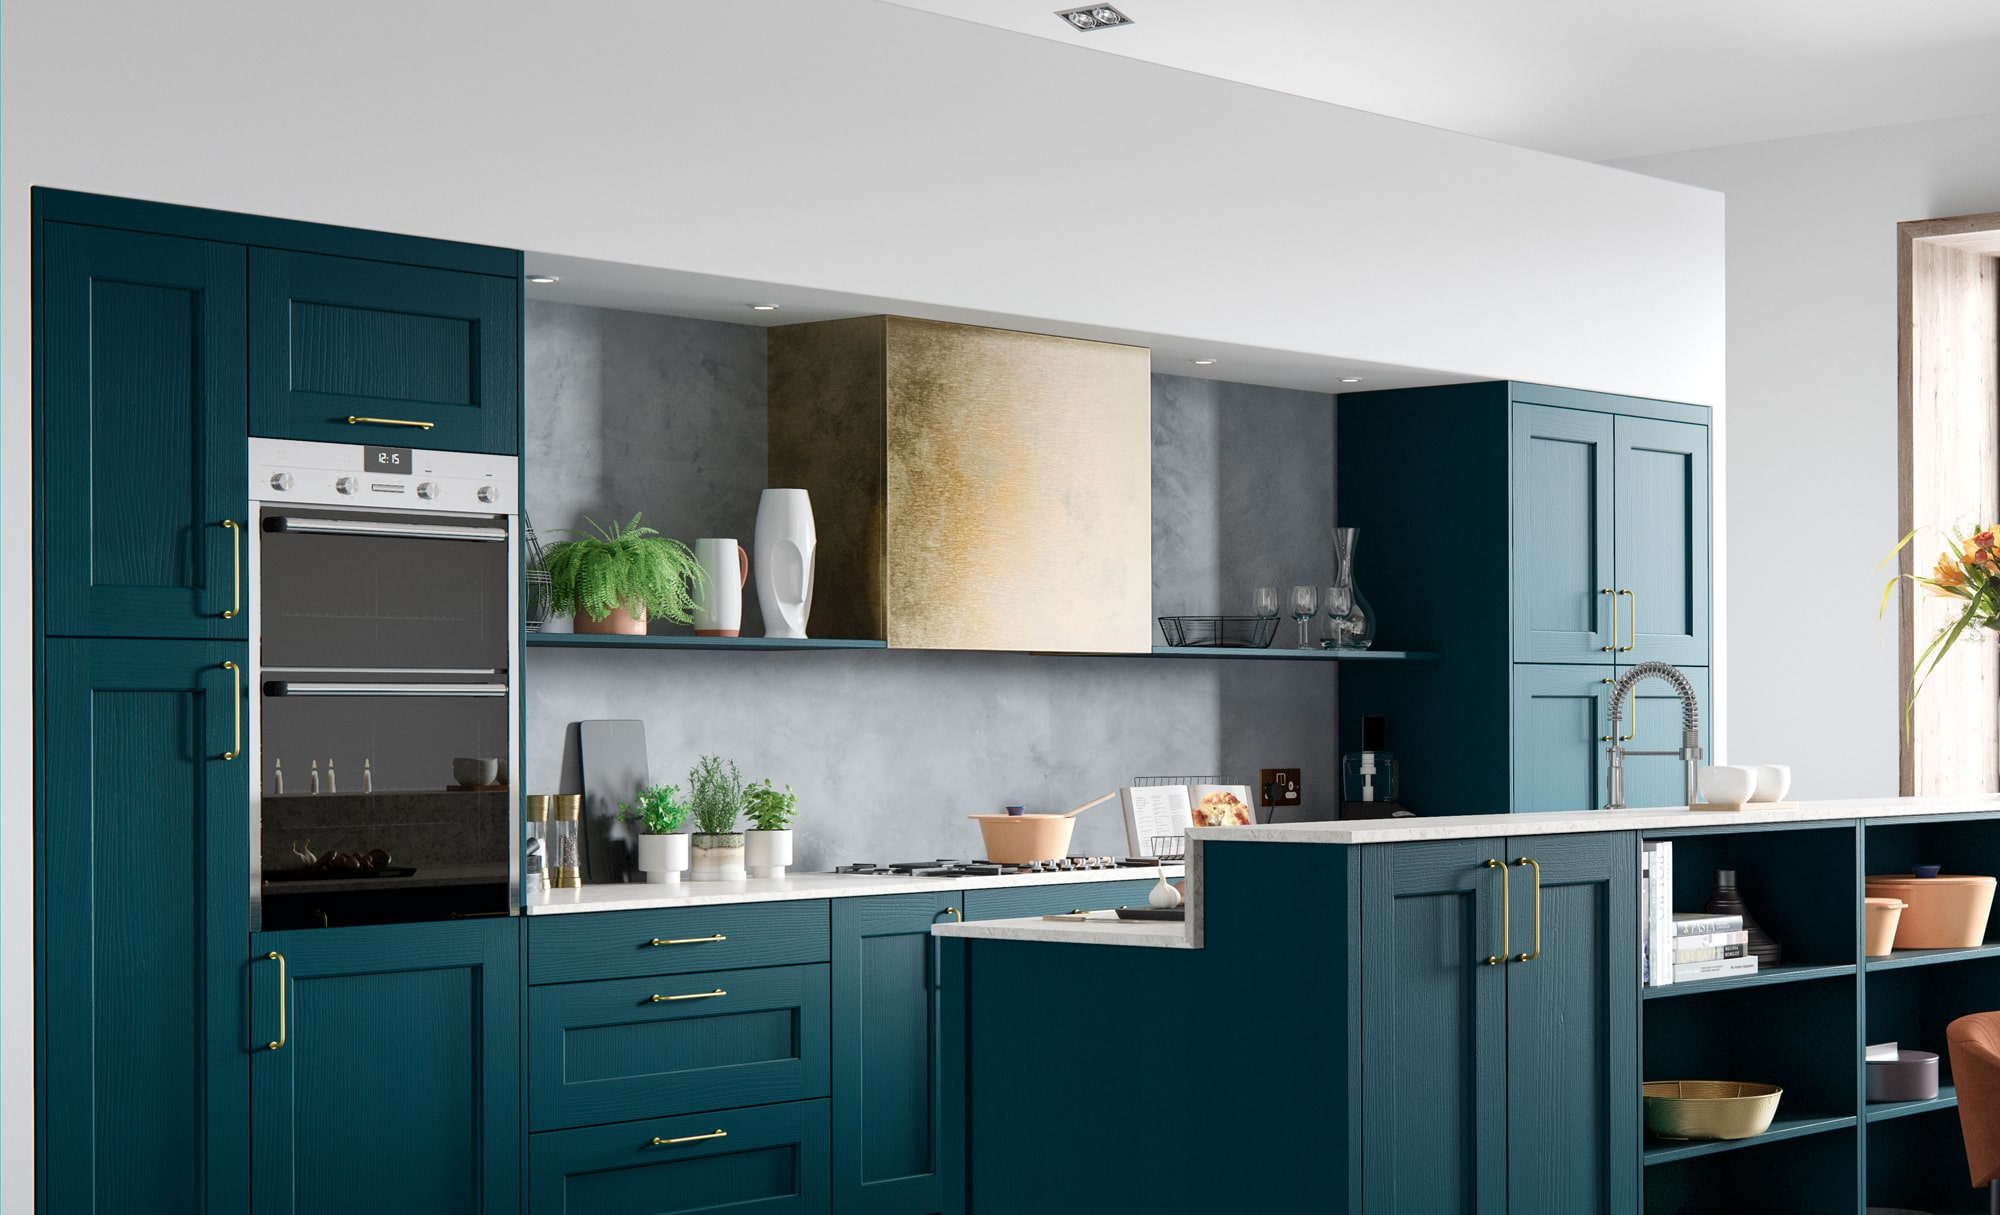 Classic Modern Wakefield Shaker Style Kitchen in Painted Marine